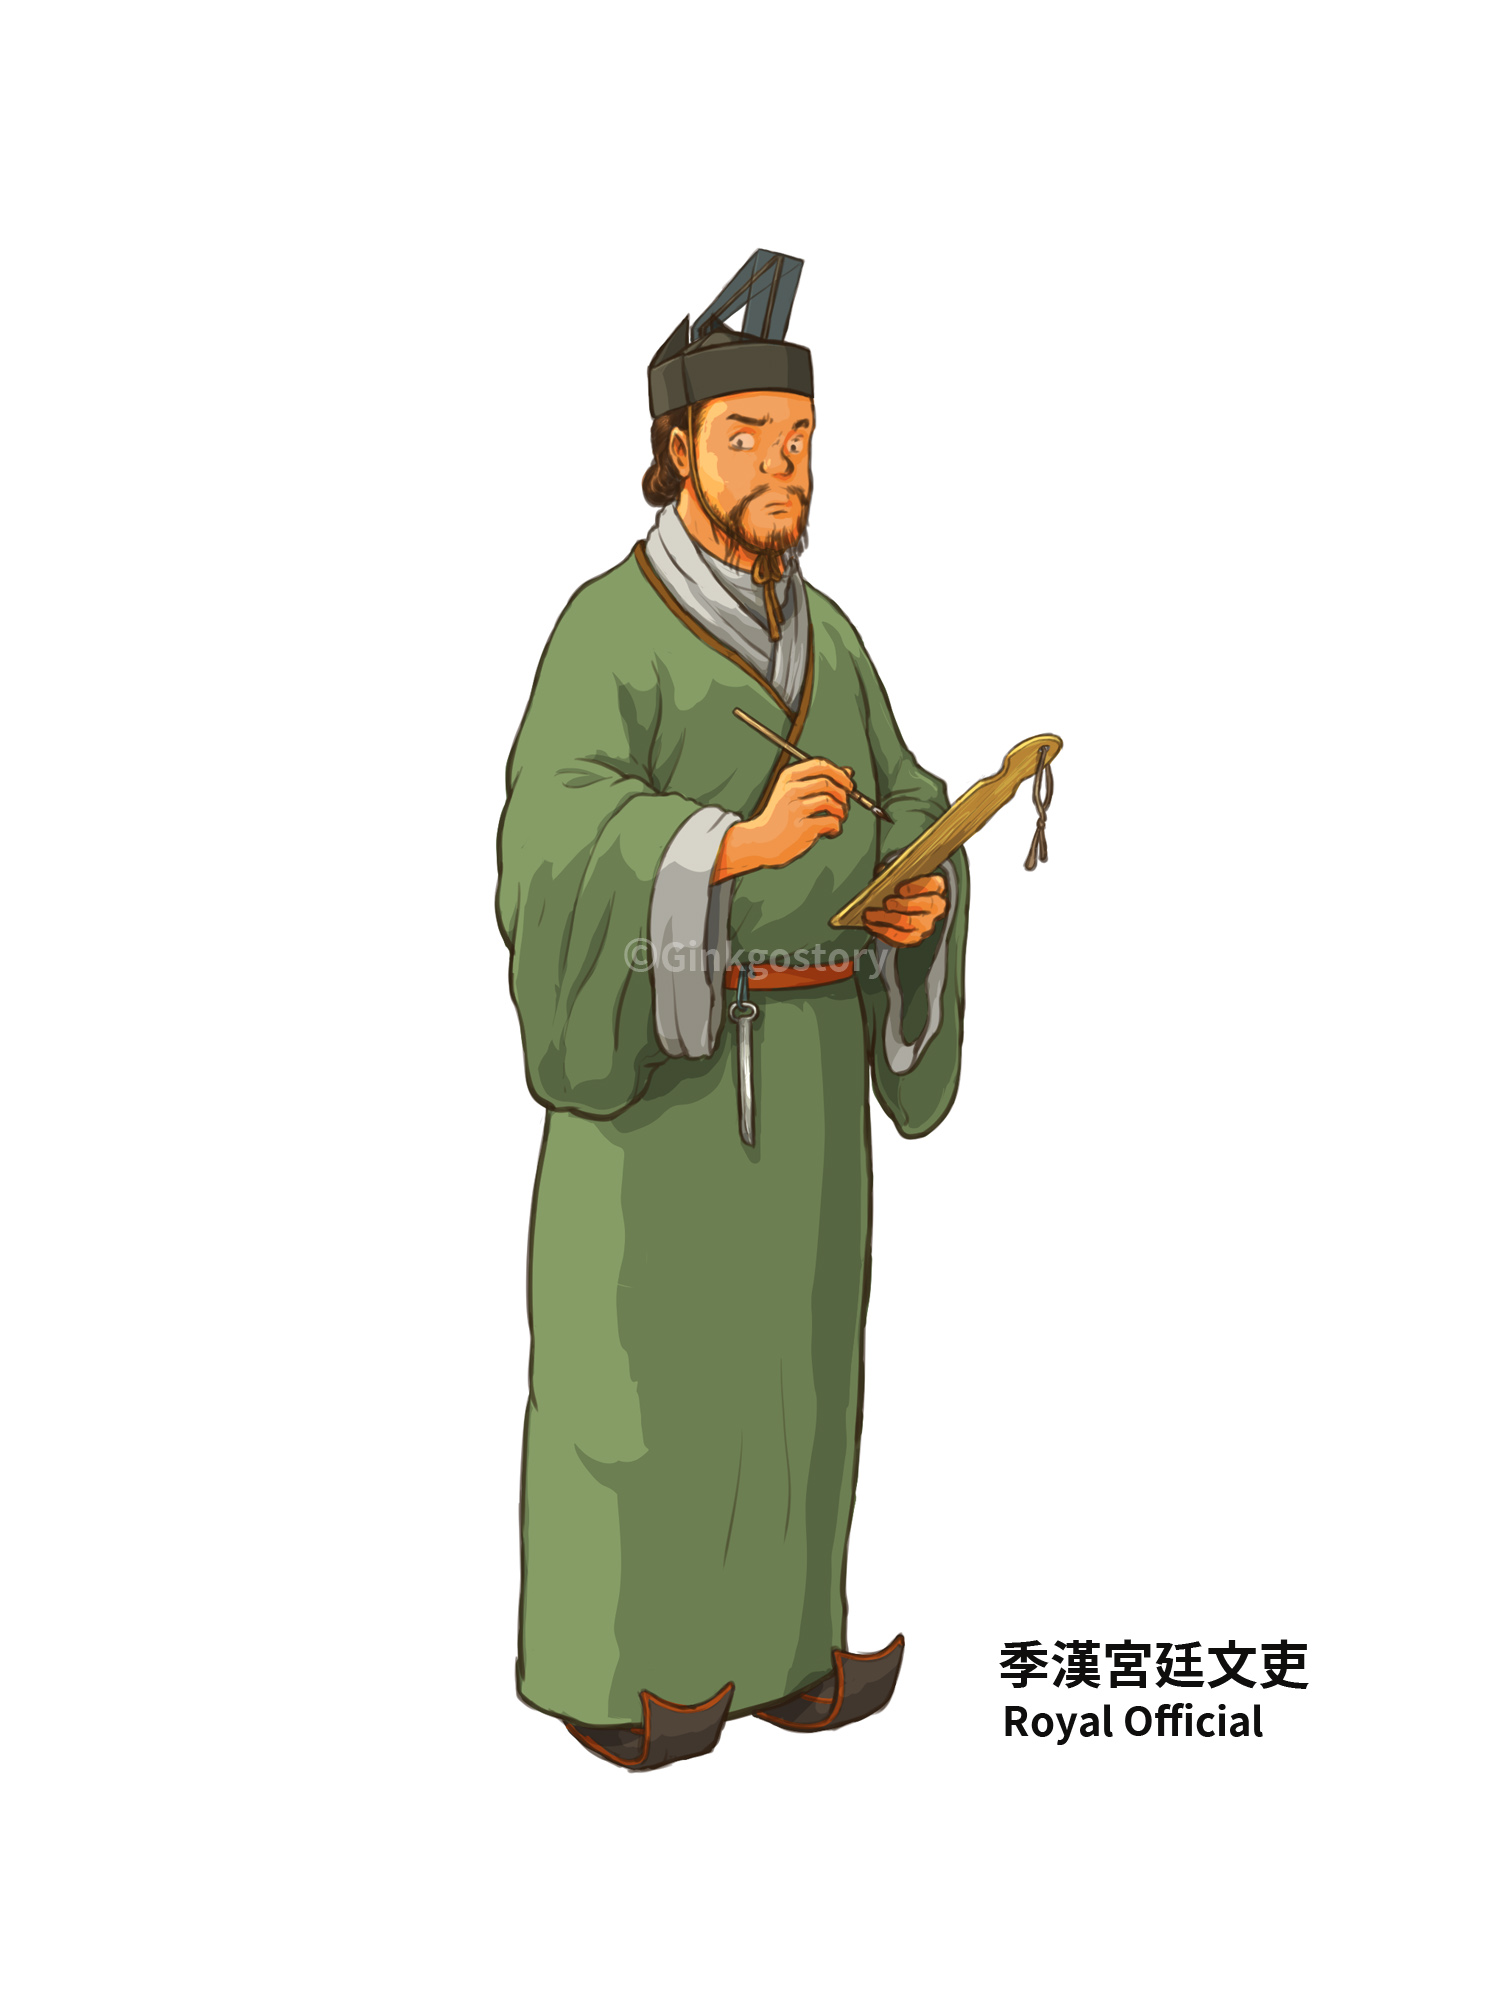 Three Kingdoms: Royal Official